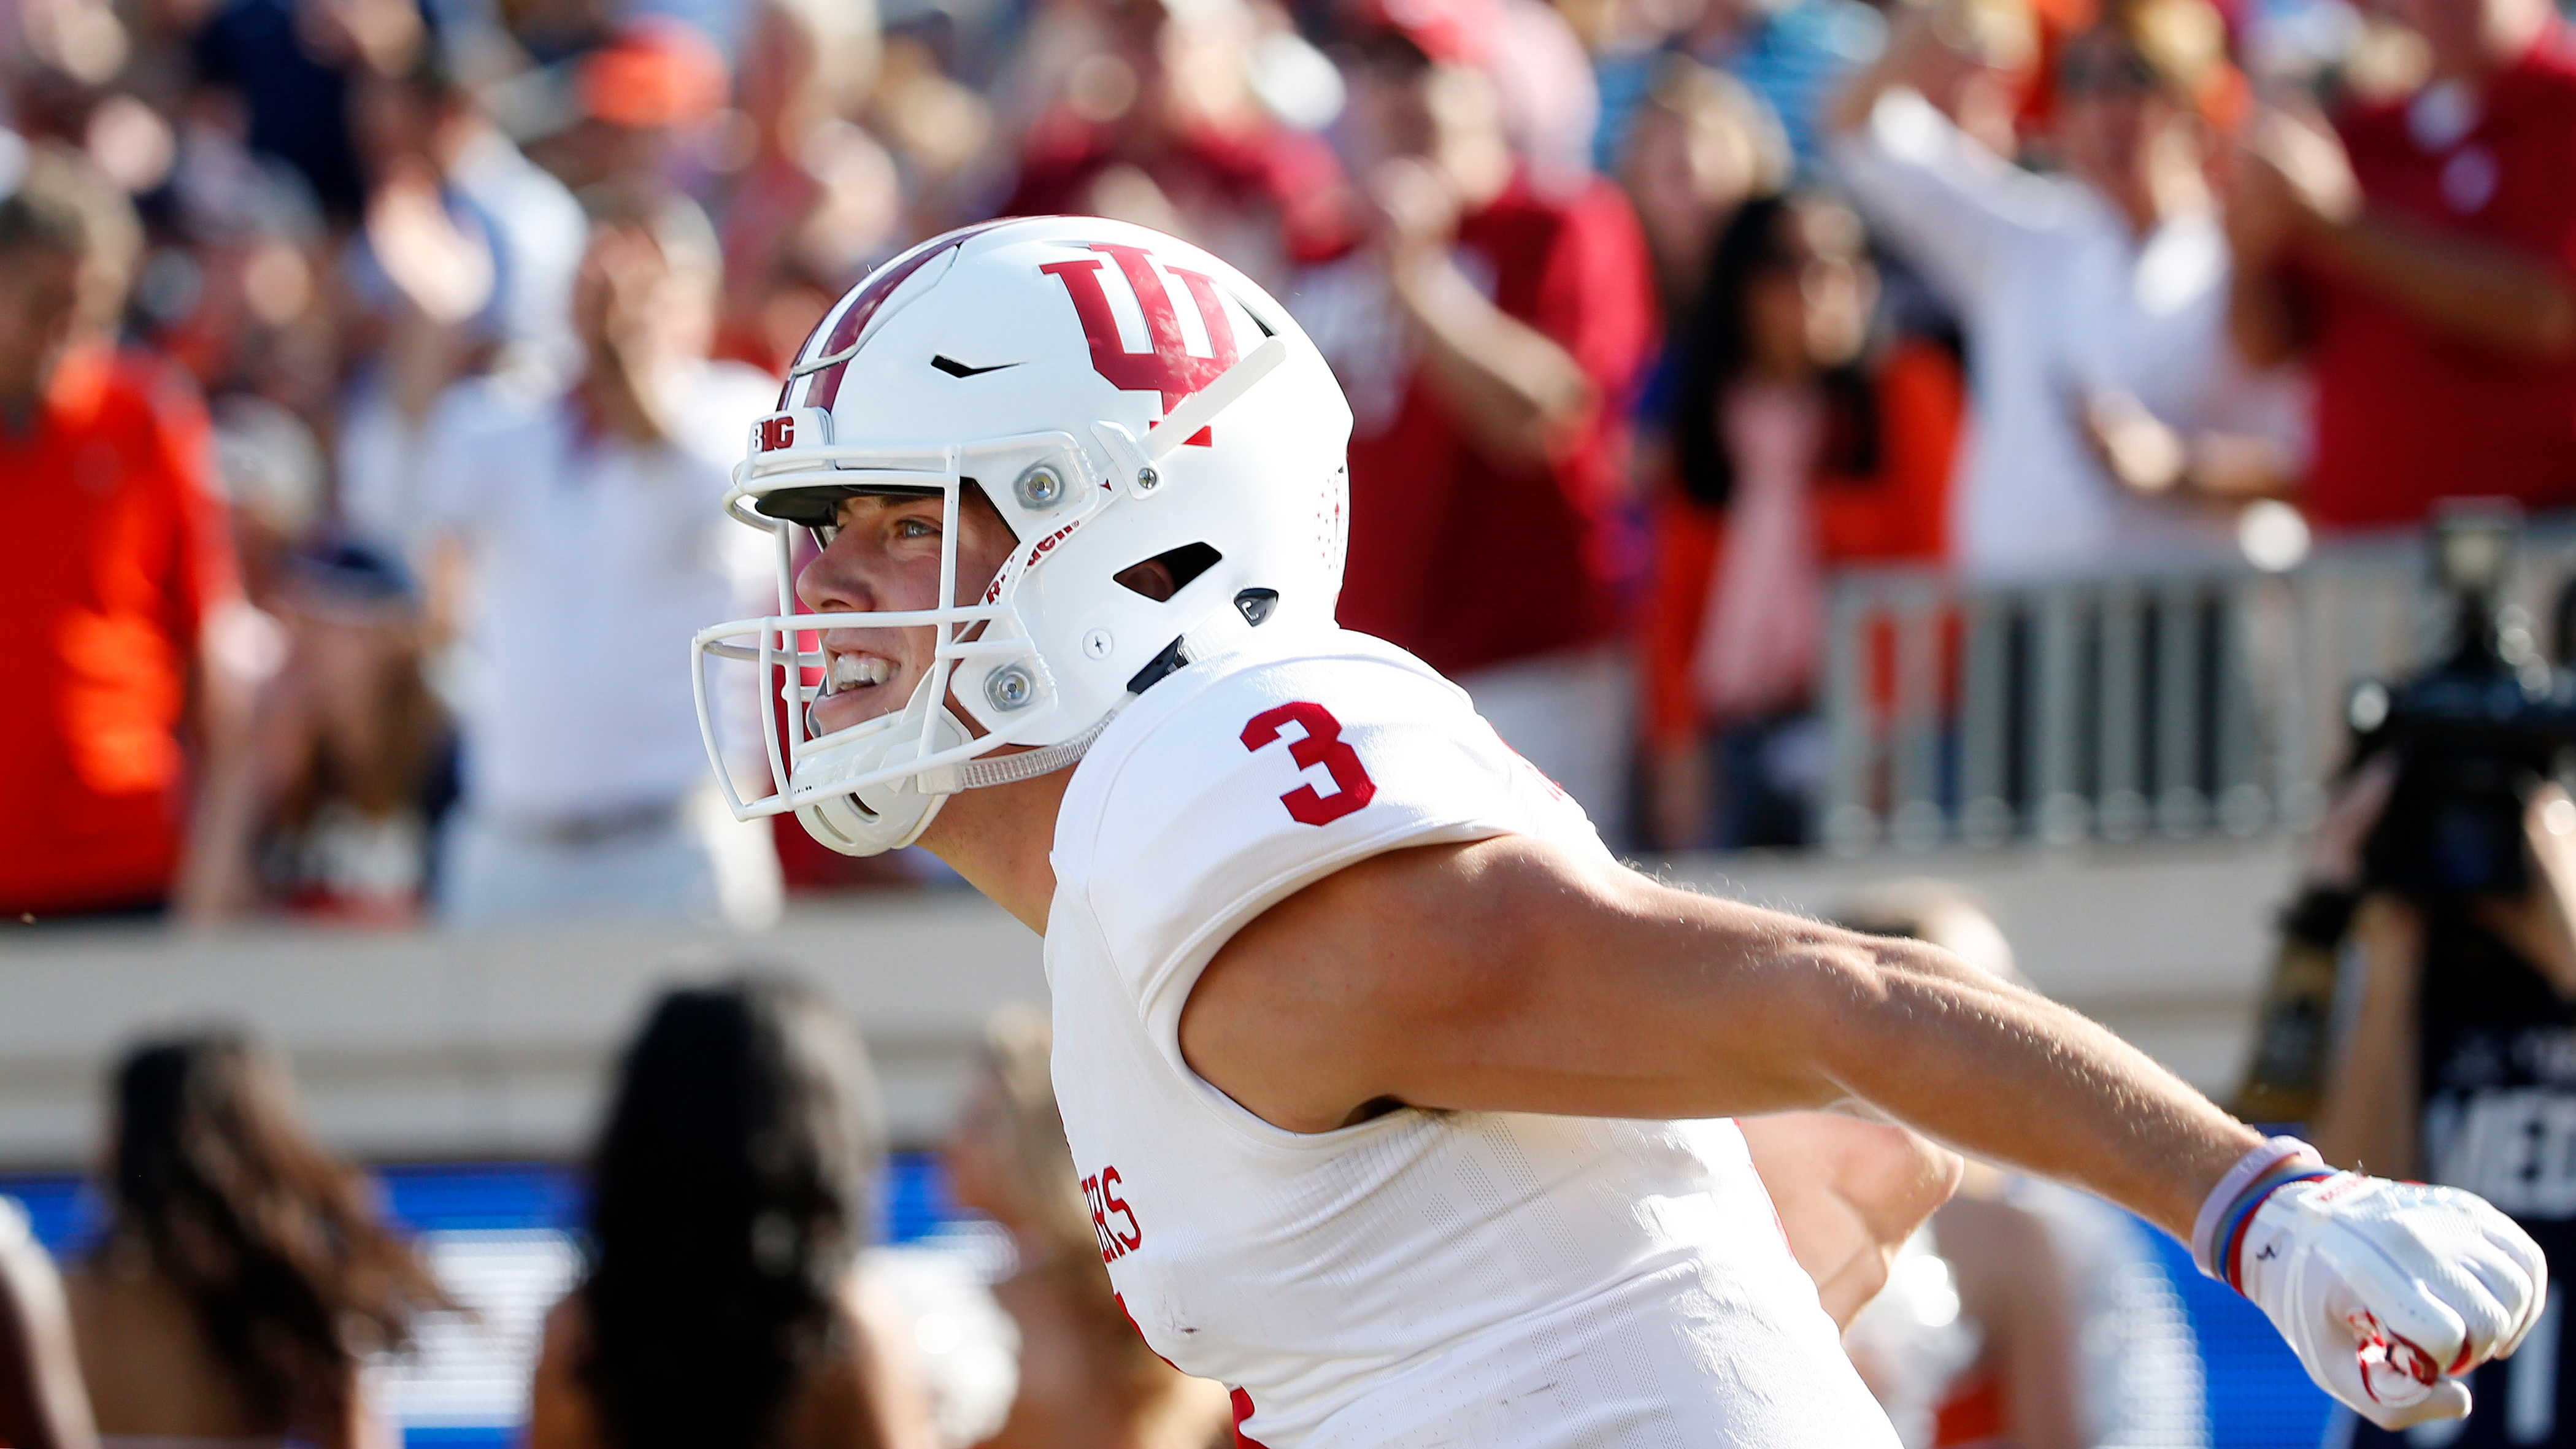 No more rotating: Ramsey is the man at QB for Hoosiers